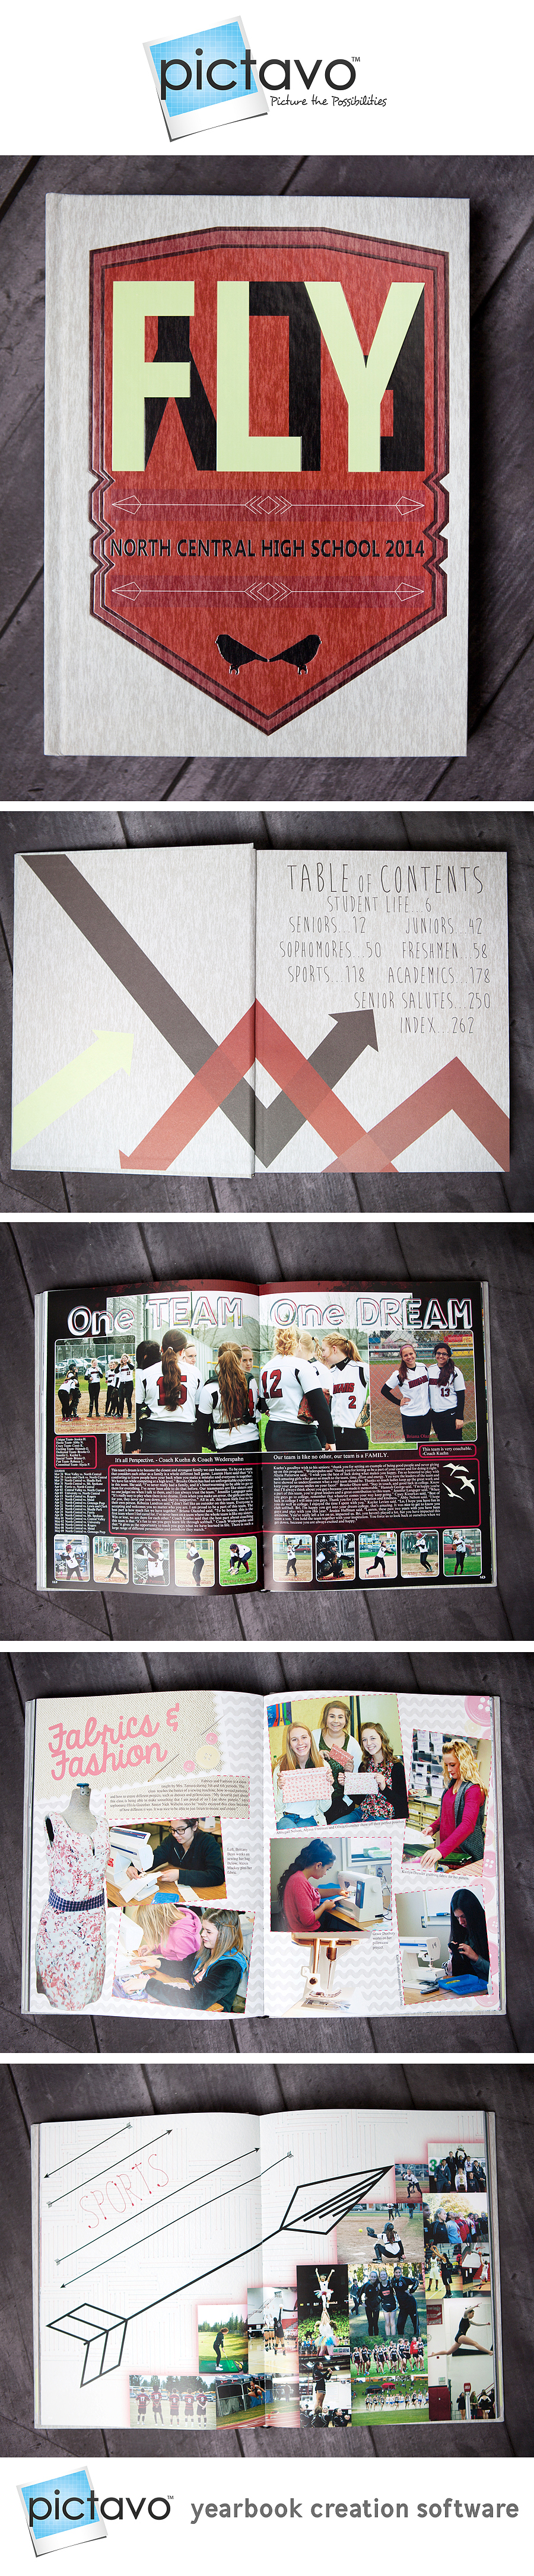 Great use of theme in all parts of a yearbook.